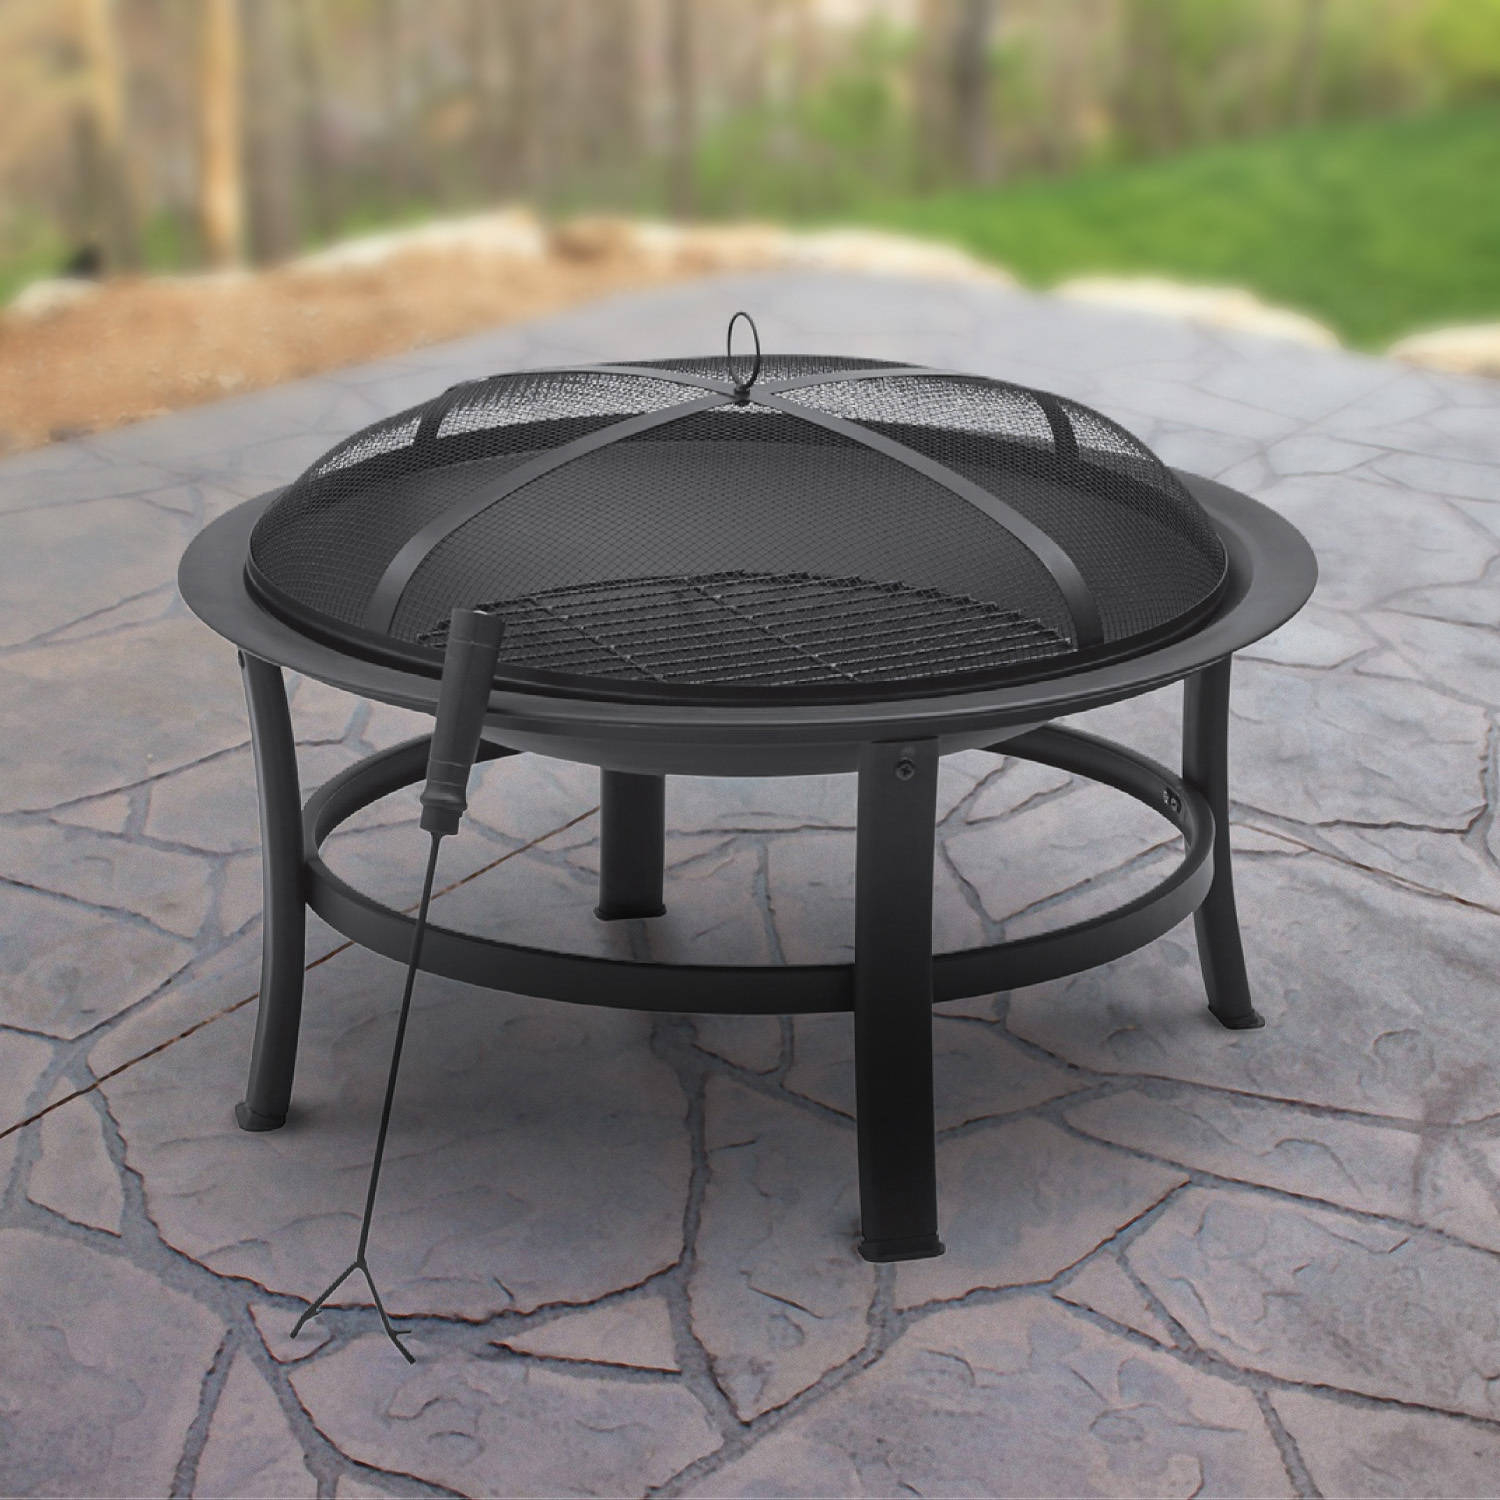 Mainstays 30 Fire Pit Black Walmart within proportions 1500 X 1500